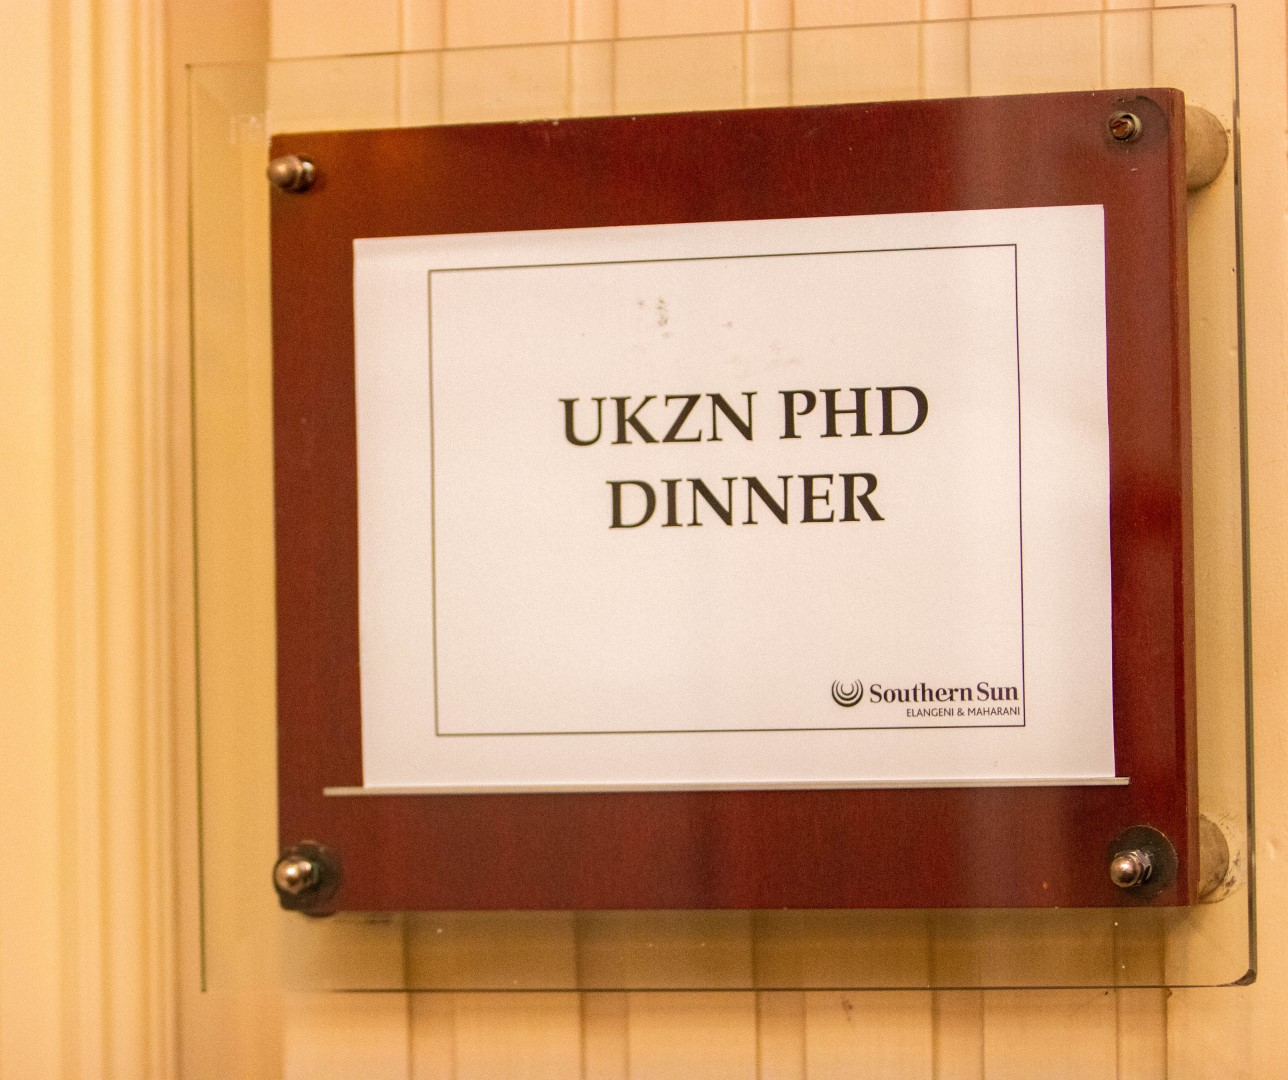 UKZN PhD dinner at the Maharani Hotel